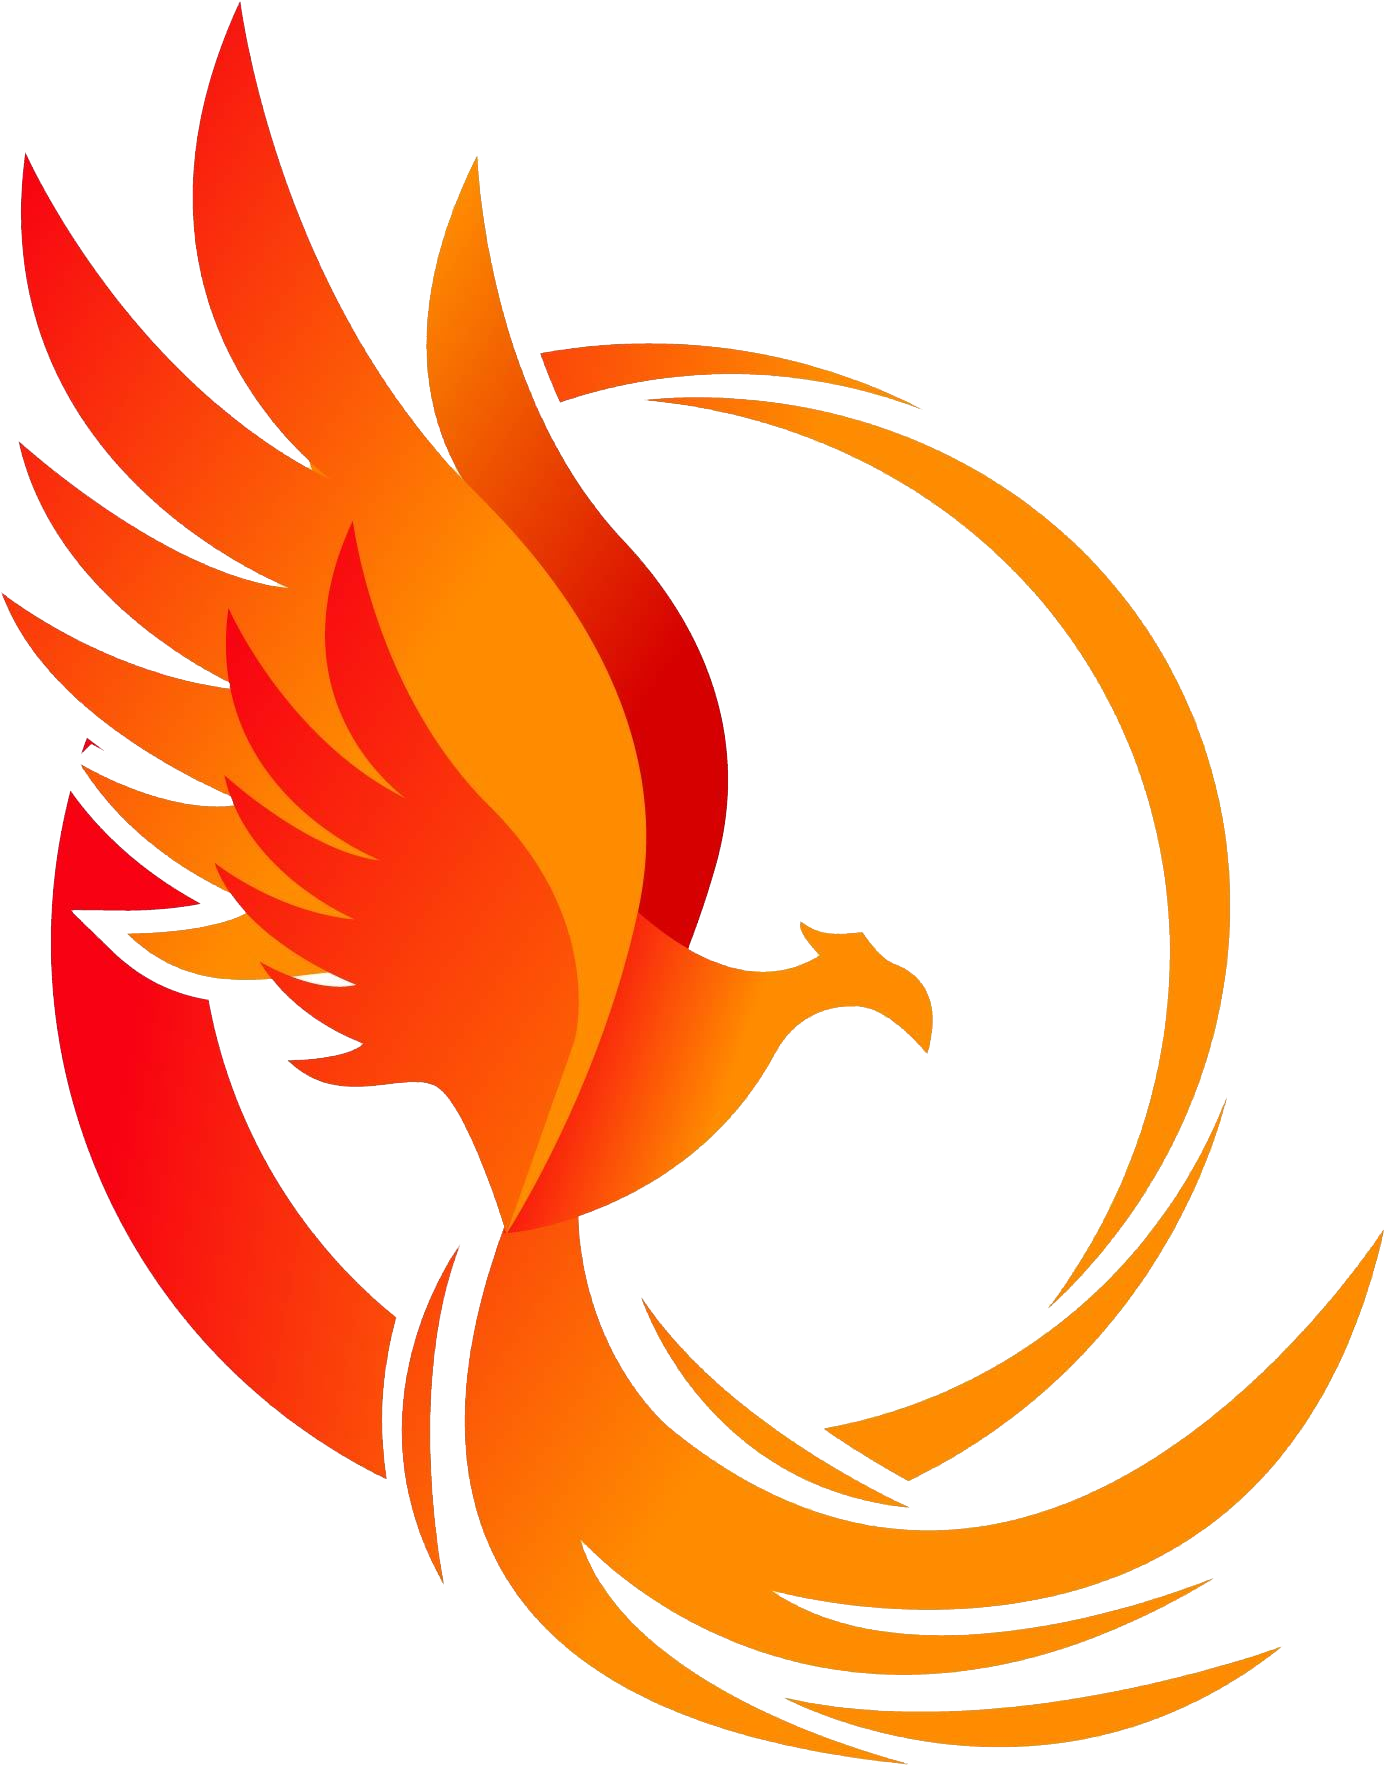 Download The Birth Of The Phoenix PNG Image with No.